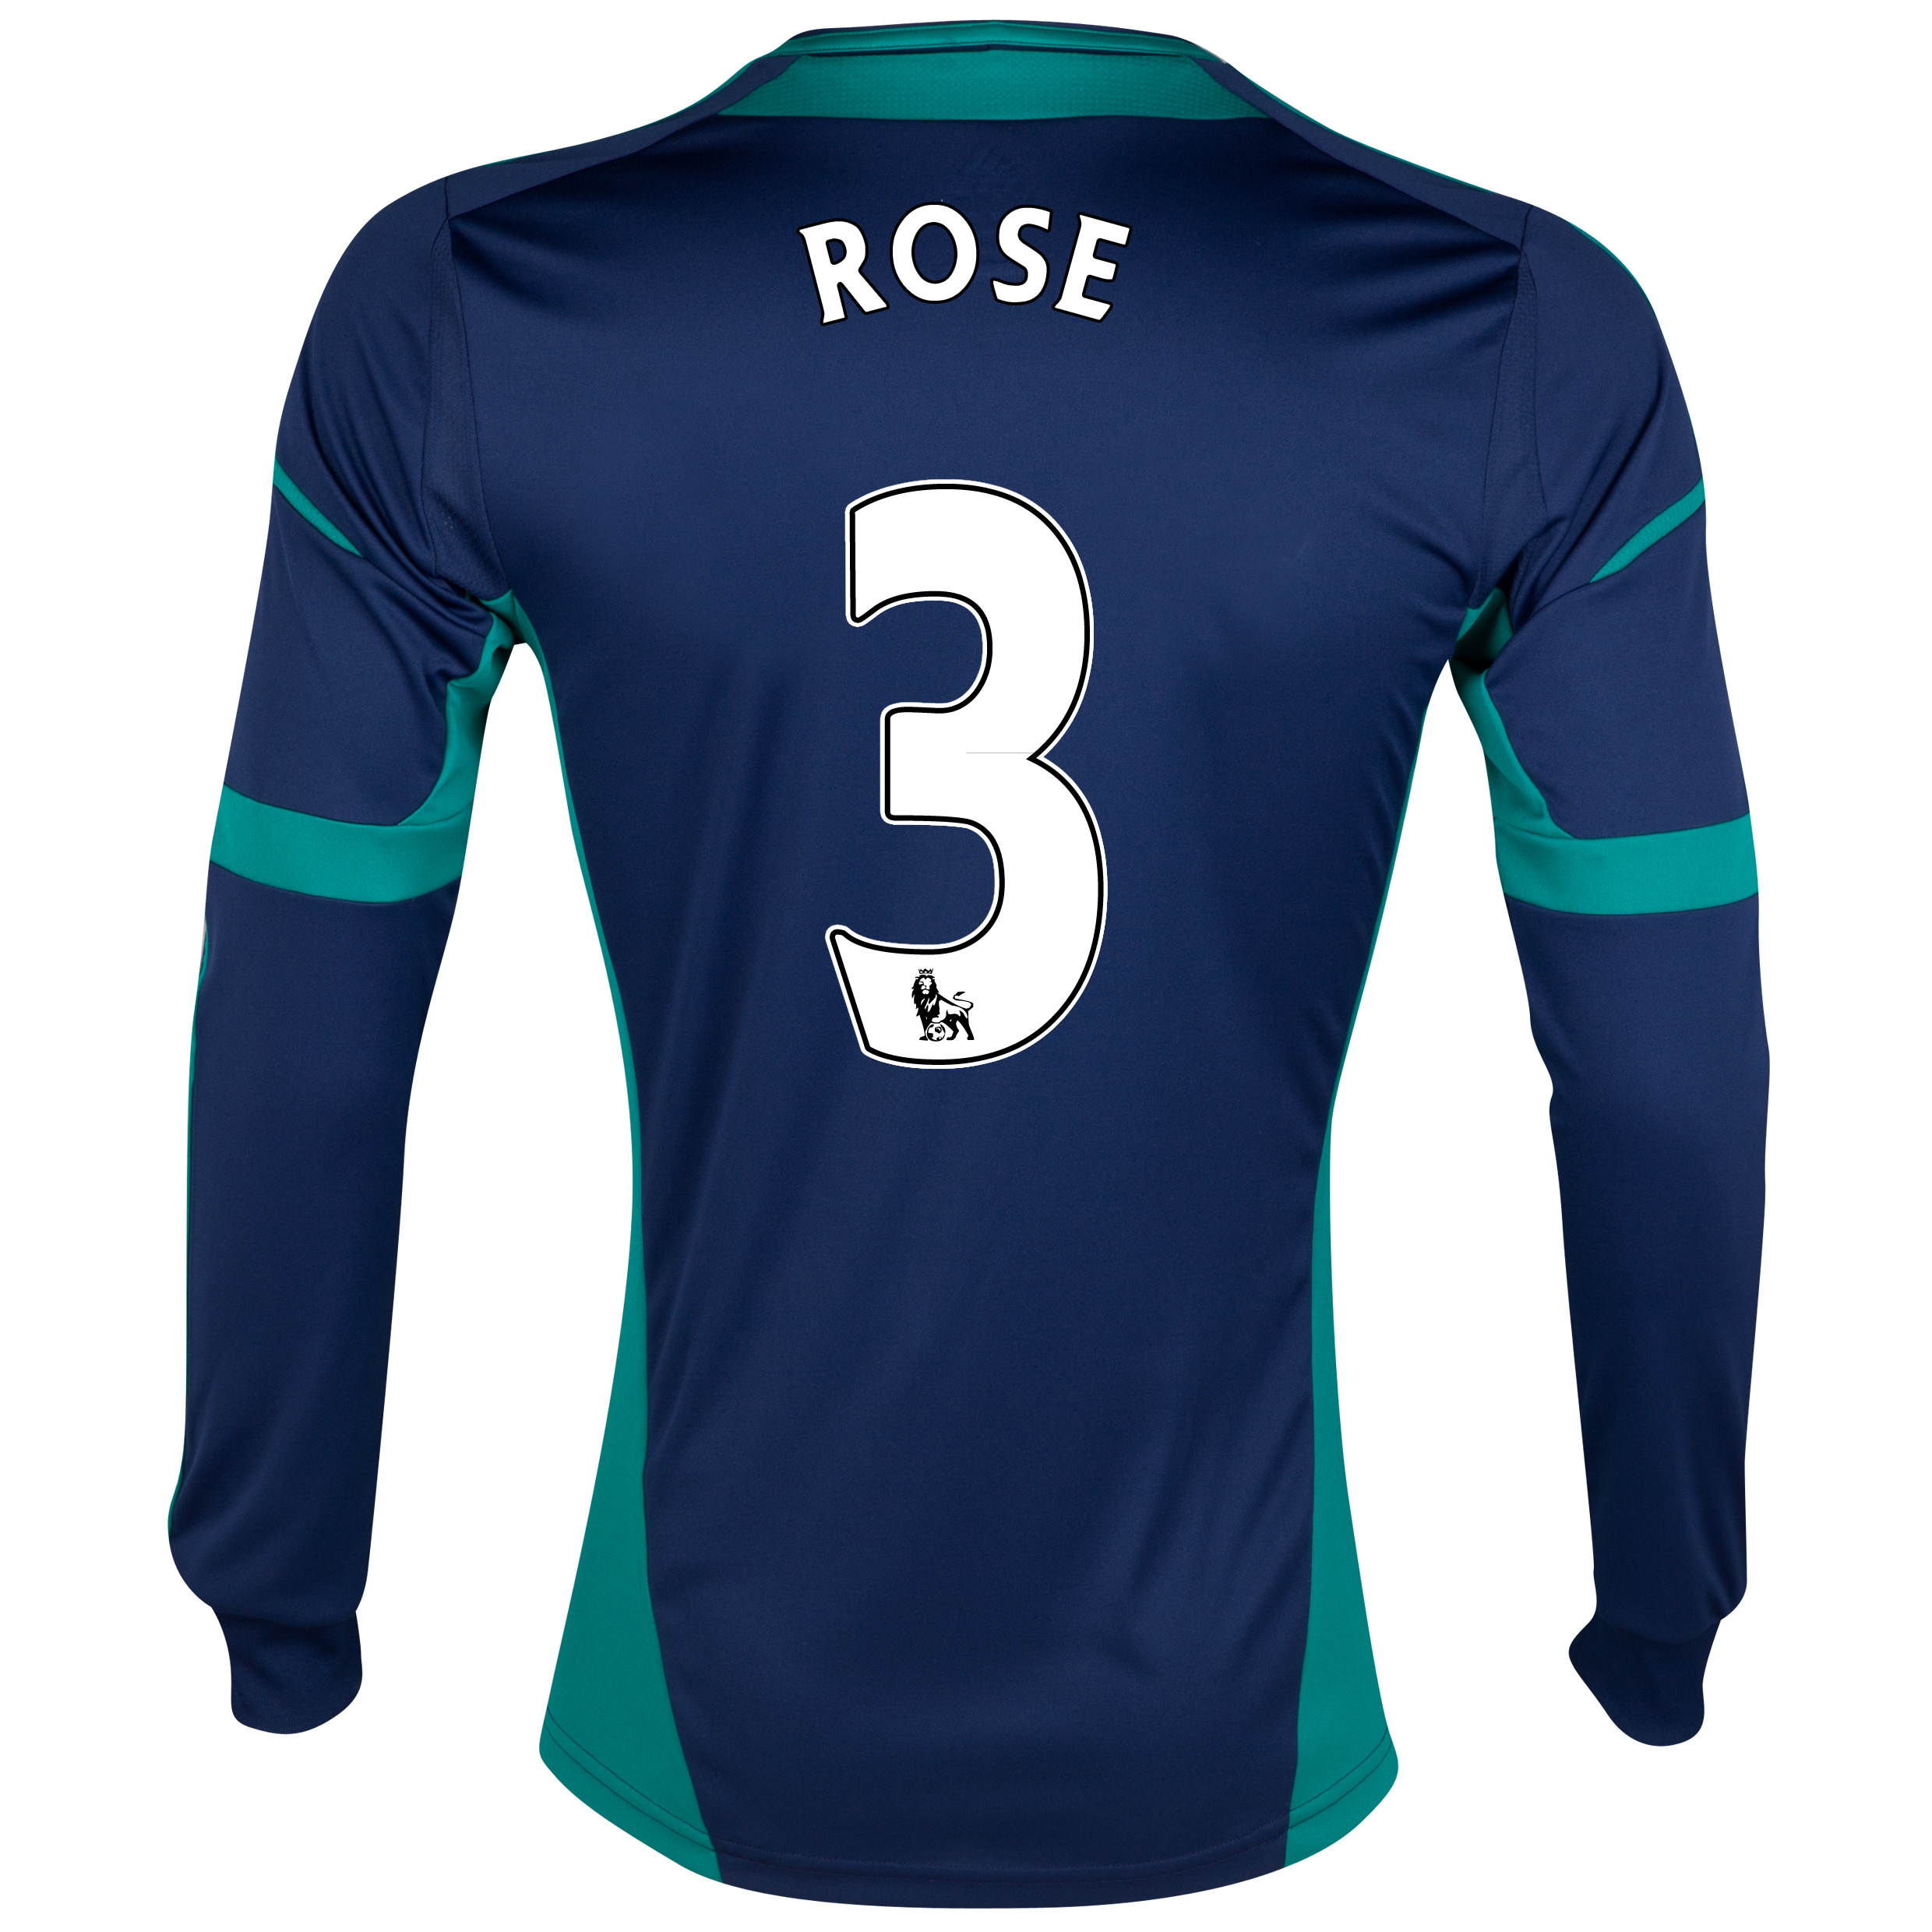 Sunderland Away Shirt 2012/13 - Long Sleeved with Rose 3 printing